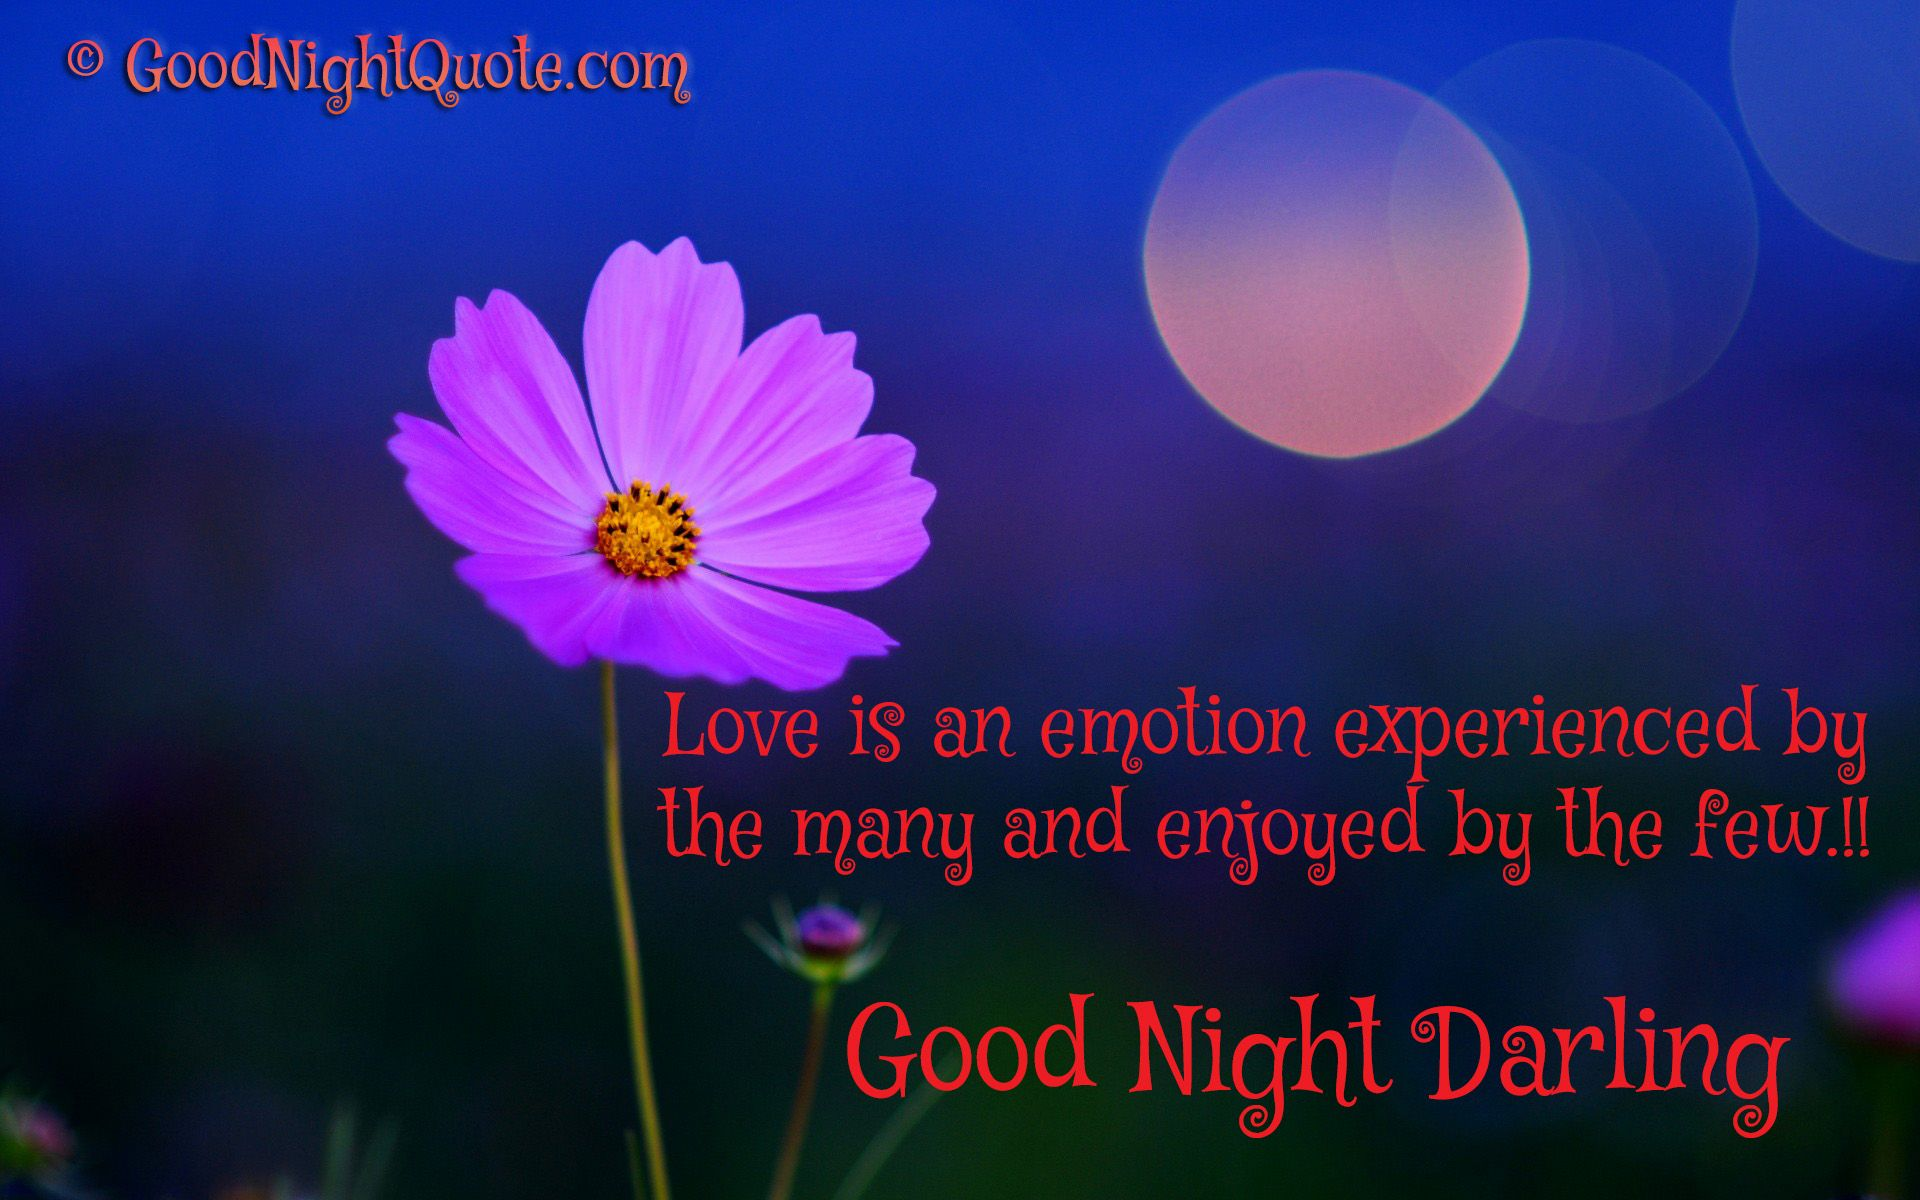 Good Night Darling Love Quote For Lover Good Night Quotes And